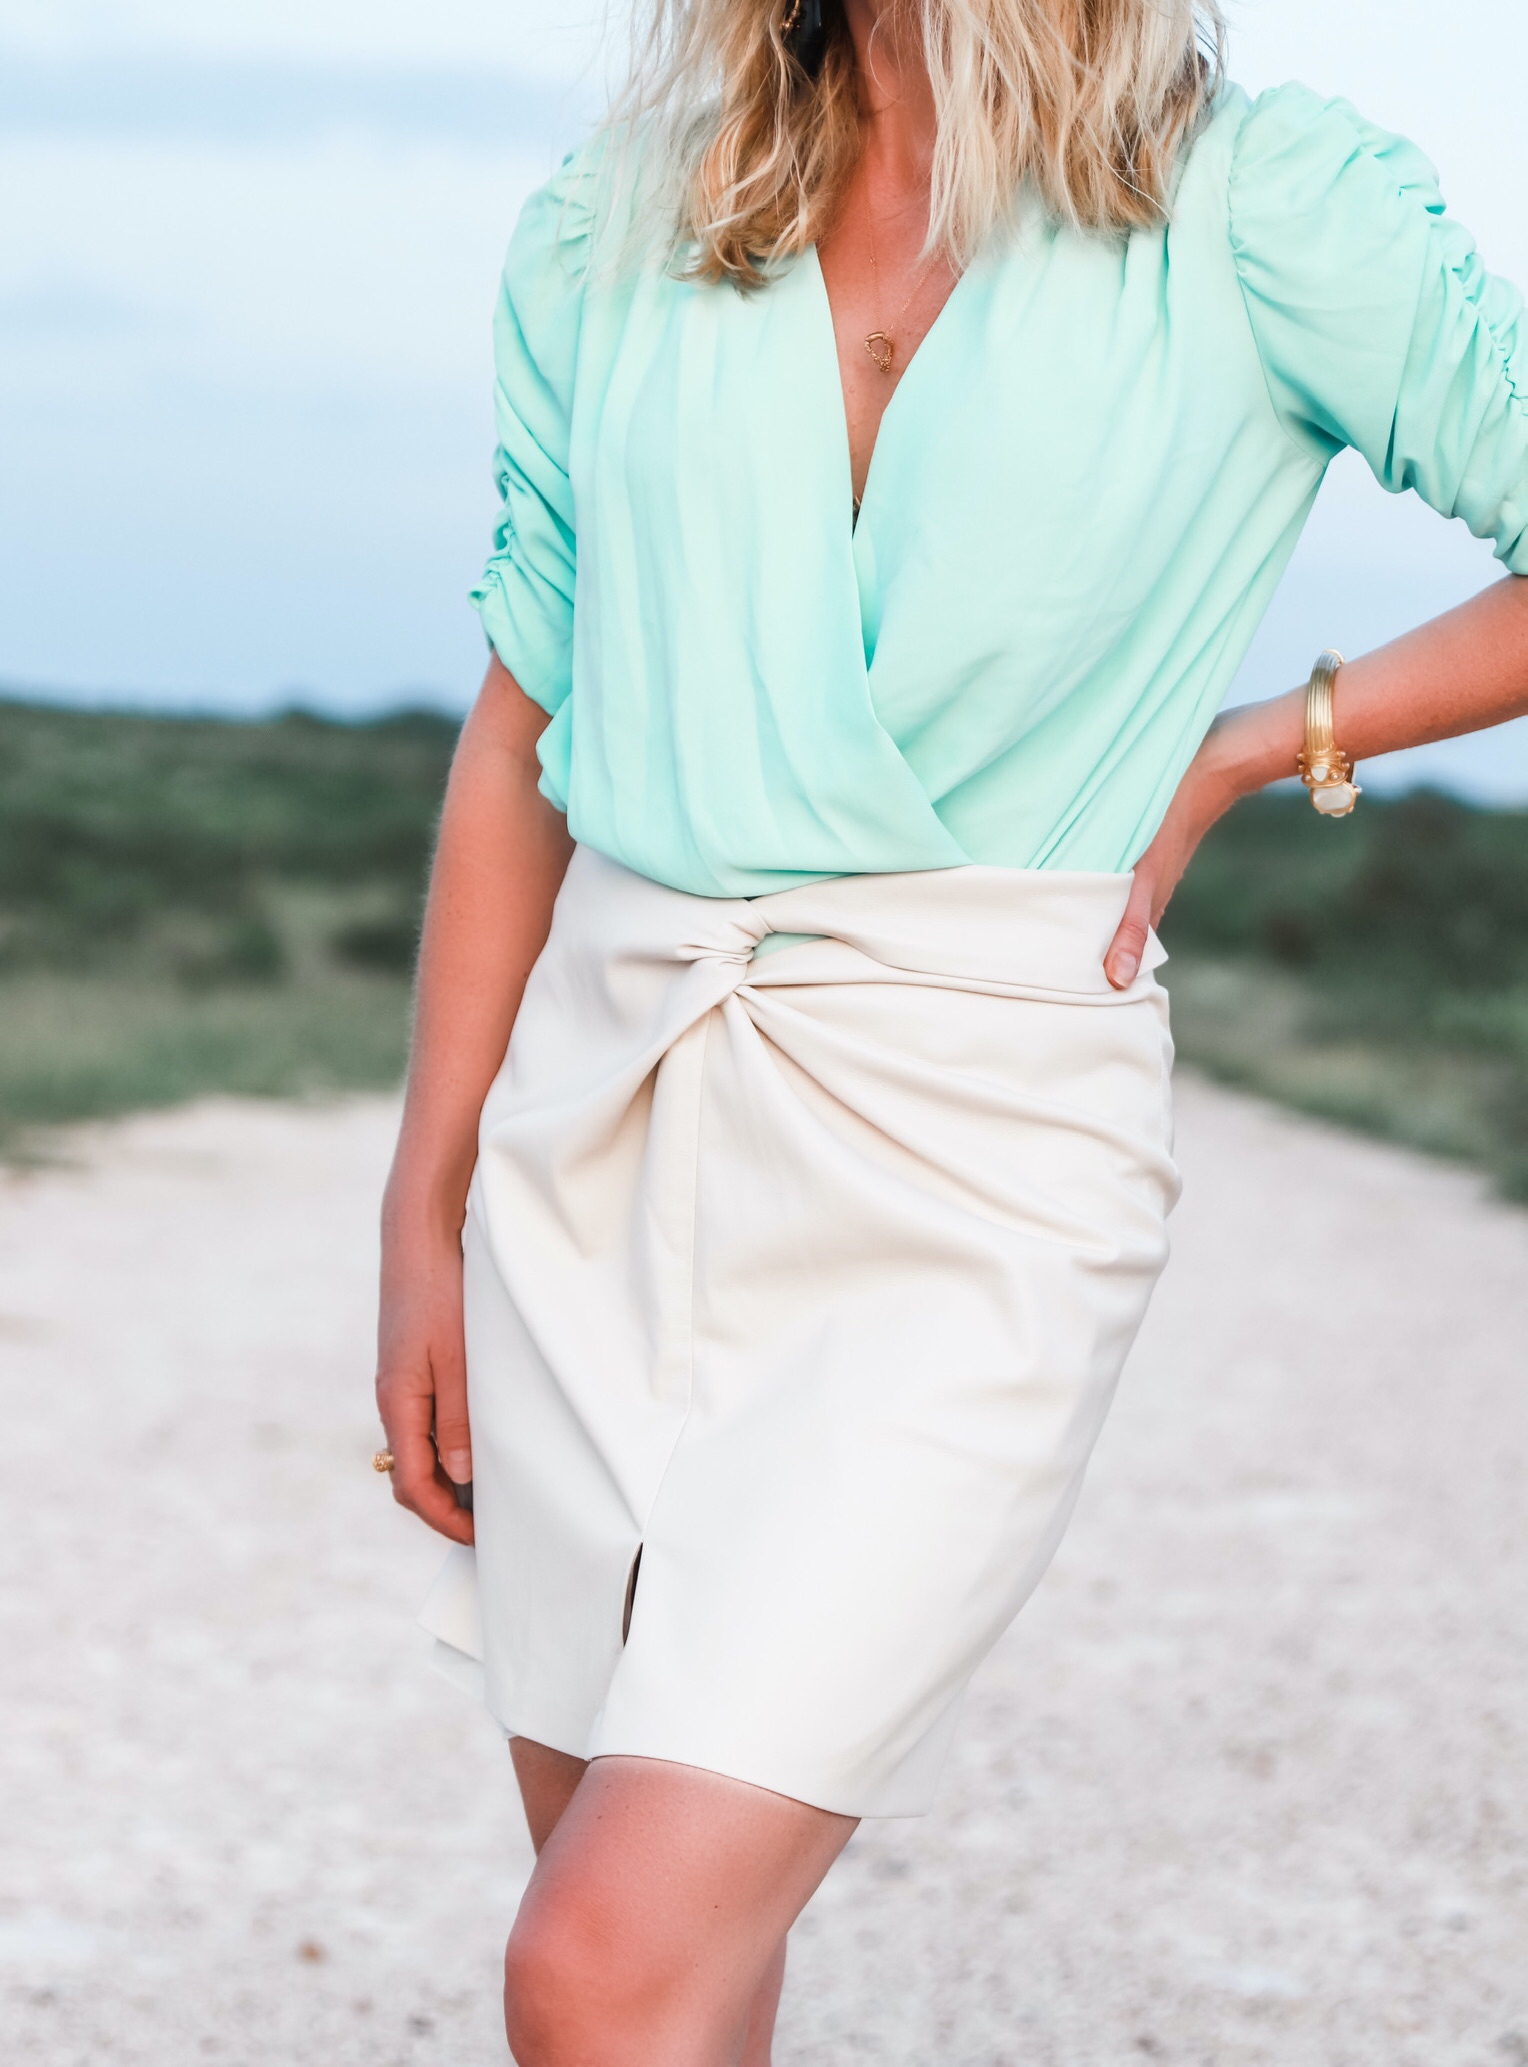 Nanushka Vegan leather Skirt, Fashion blogger Erin Busbee of Busbee Style wearing a mint green bodysuit by Amanda Uprichard, white vegan leather knotted skirt by nanushka, tortoise and pearl earrings by Elizabeth Cole, and white Botega Veneta sandals dupes standing on a ranch in south Texas